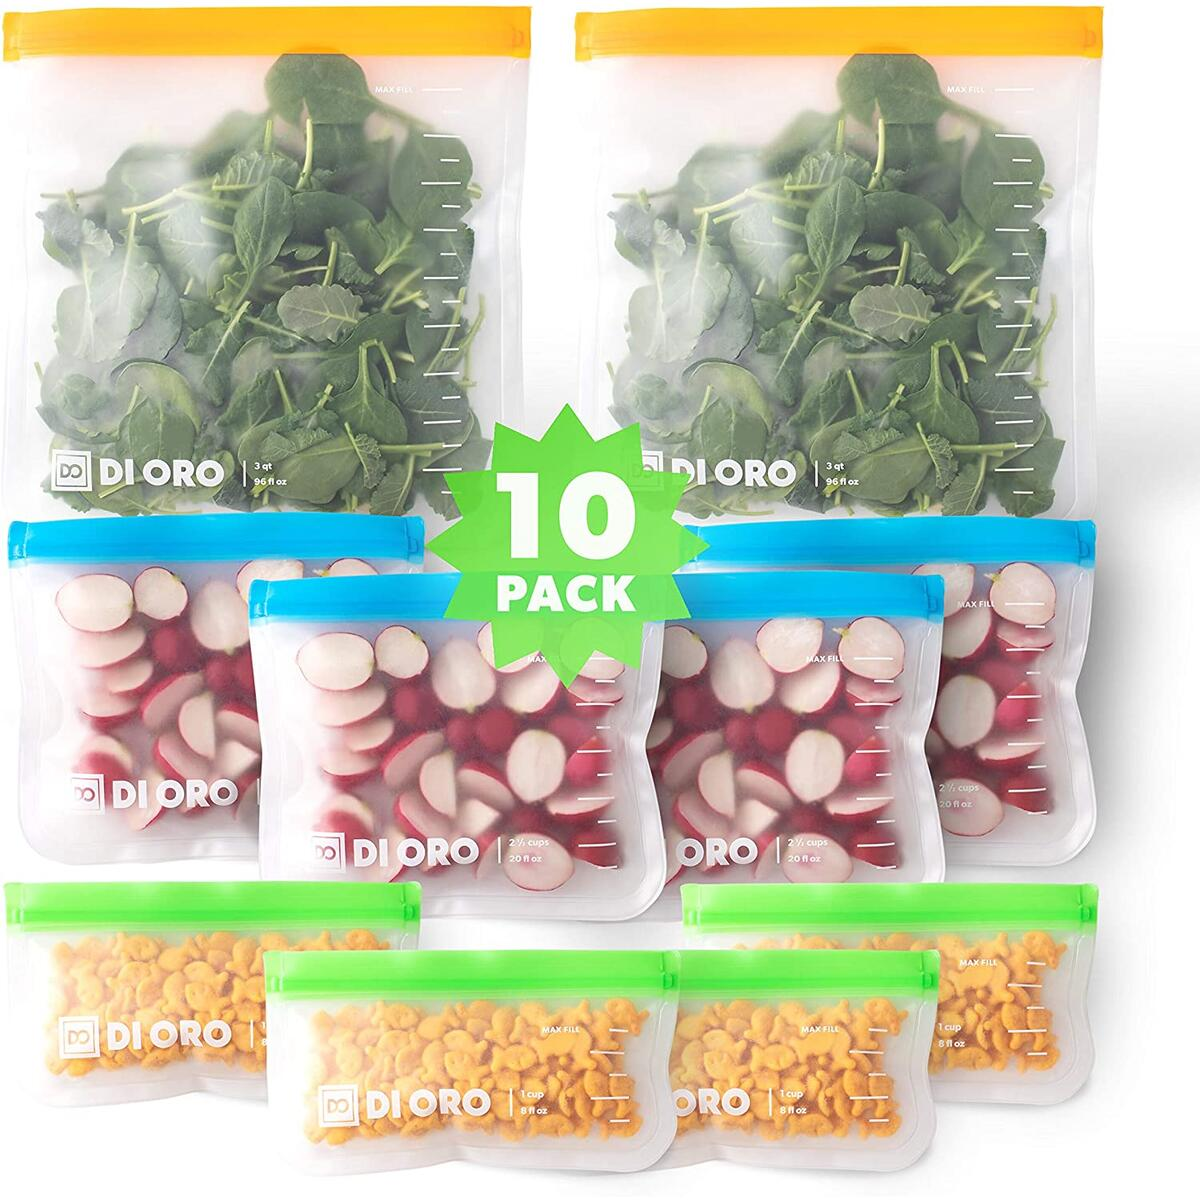 DI ORO 10-Pc Reusable Snack Bags - 100% Food Safe BPA Free Freezer Safe Bags - 2 Gallon, 4 Sandwich, and 4 Small Bags - Thick, Leakproof, and Washable - Easy Ziplock Reusable Sealing System